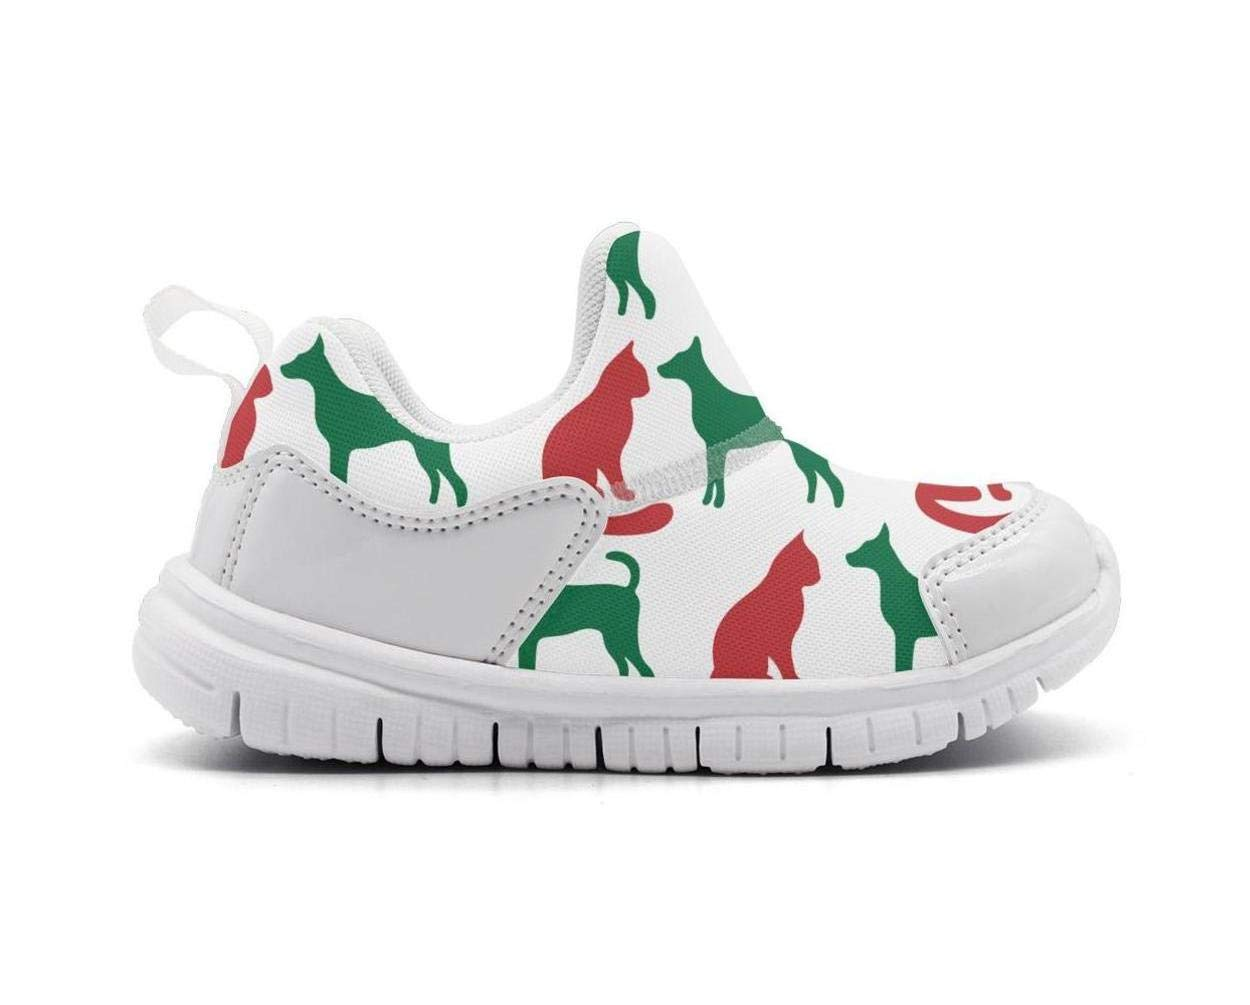 ONEYUAN Children Christmas cat and Dog Silhouettes Kid Casual Lightweight Sport Shoes Sneakers Running Shoes